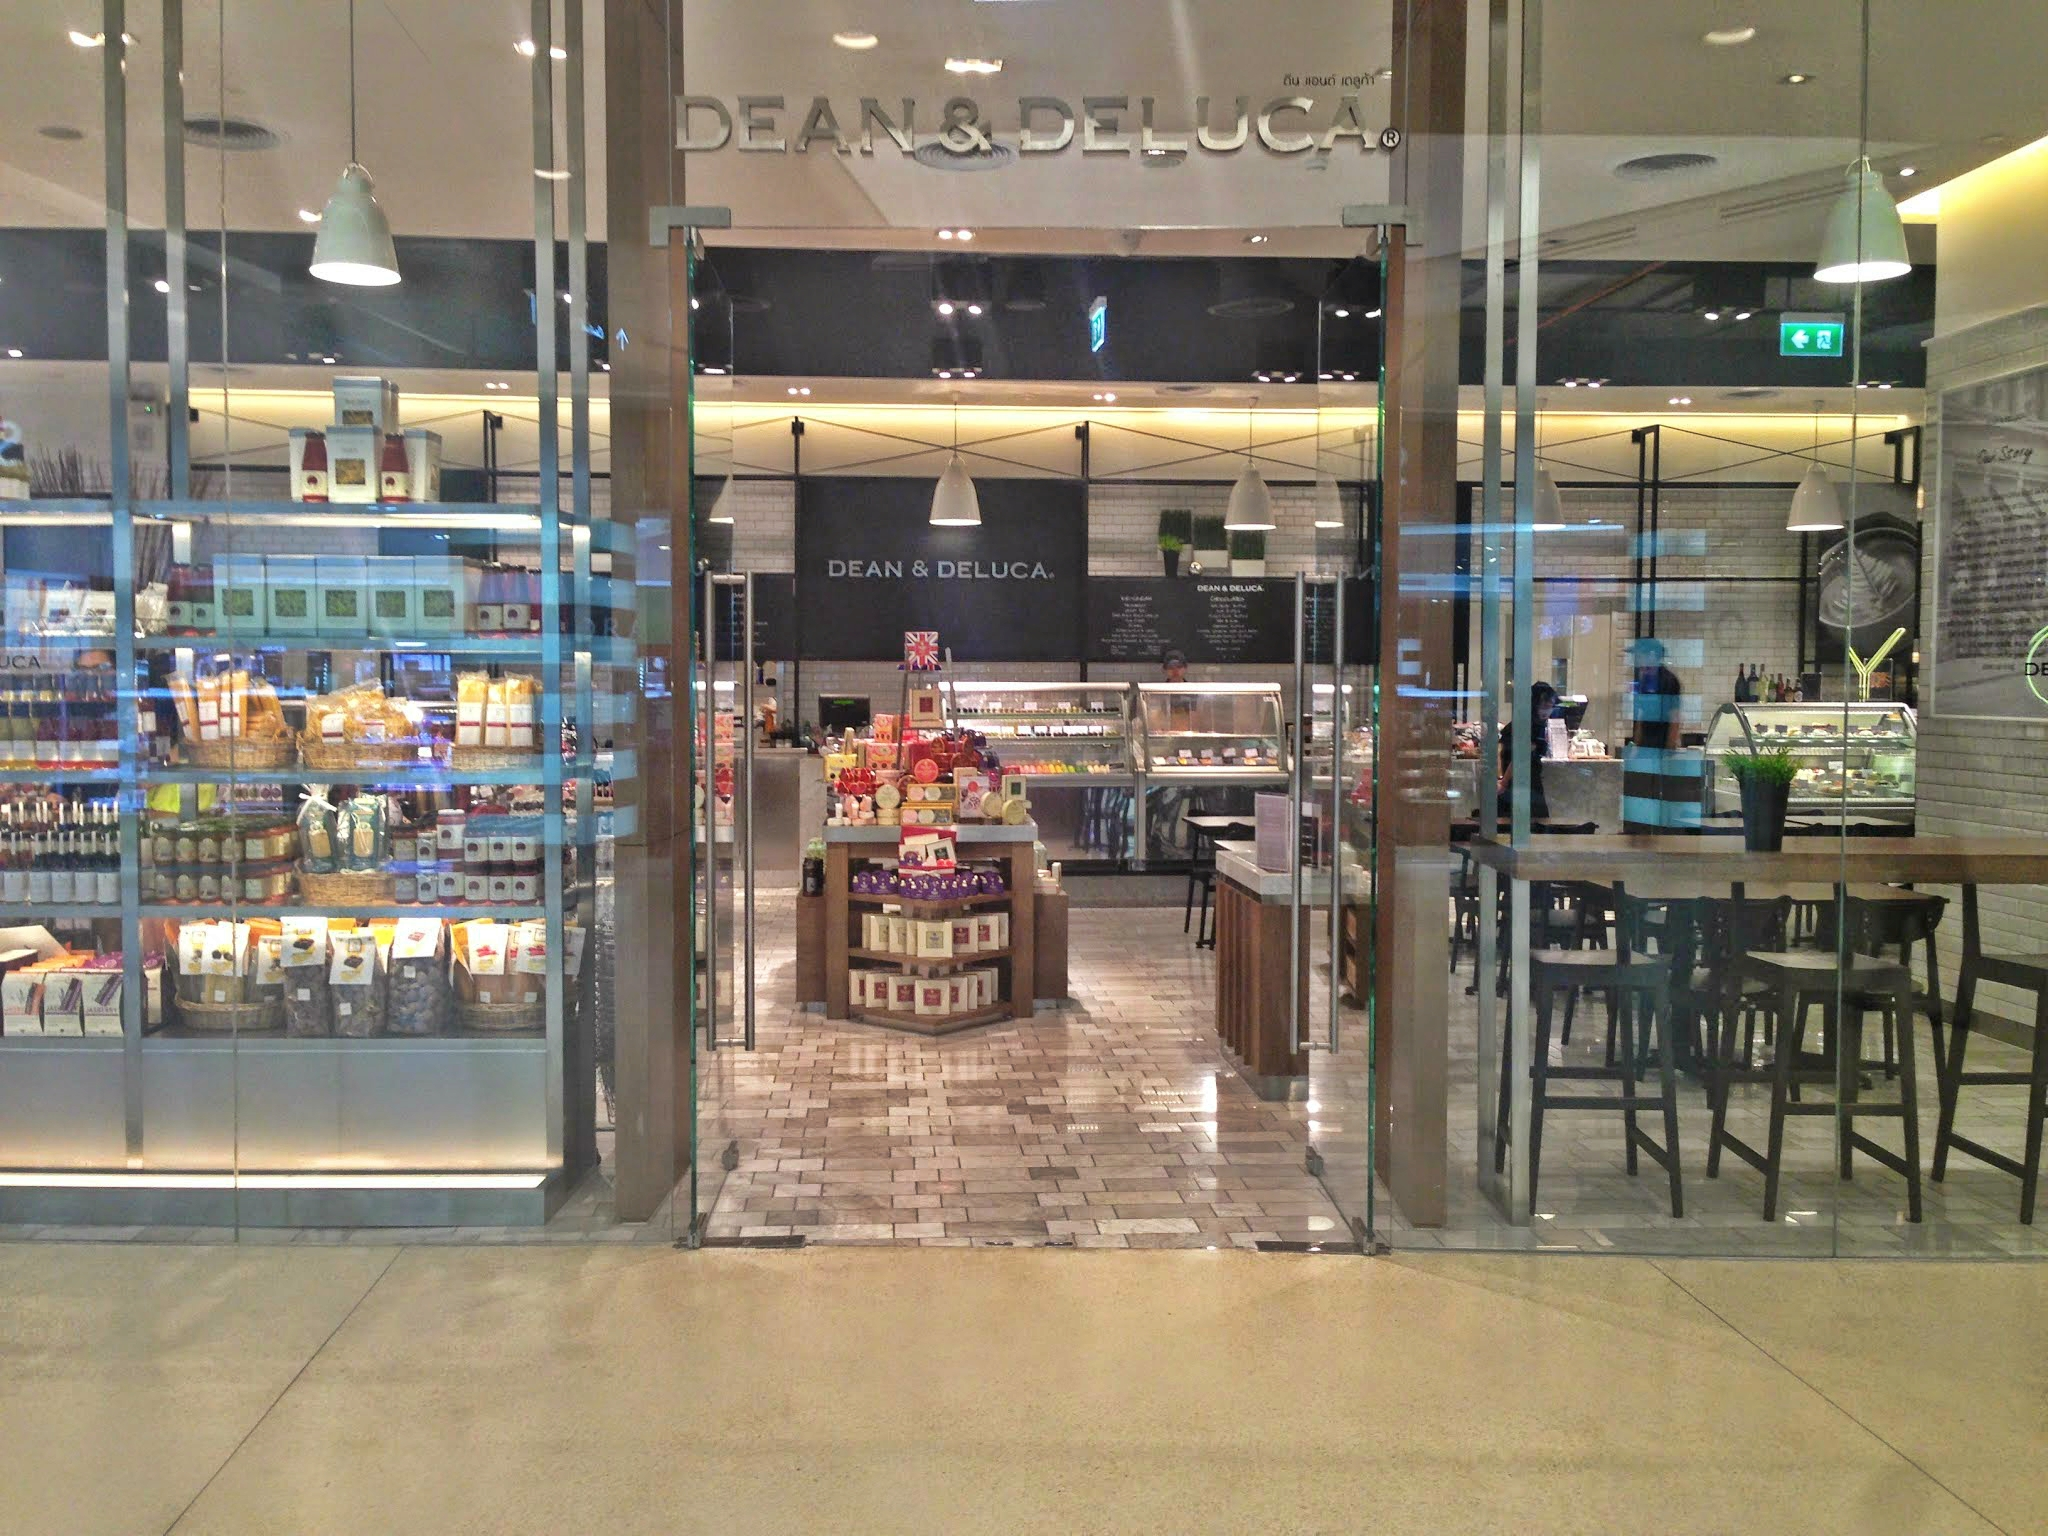 Breakfast in Bangkok Pt. 1: Dean & Deluca – Central Embassy